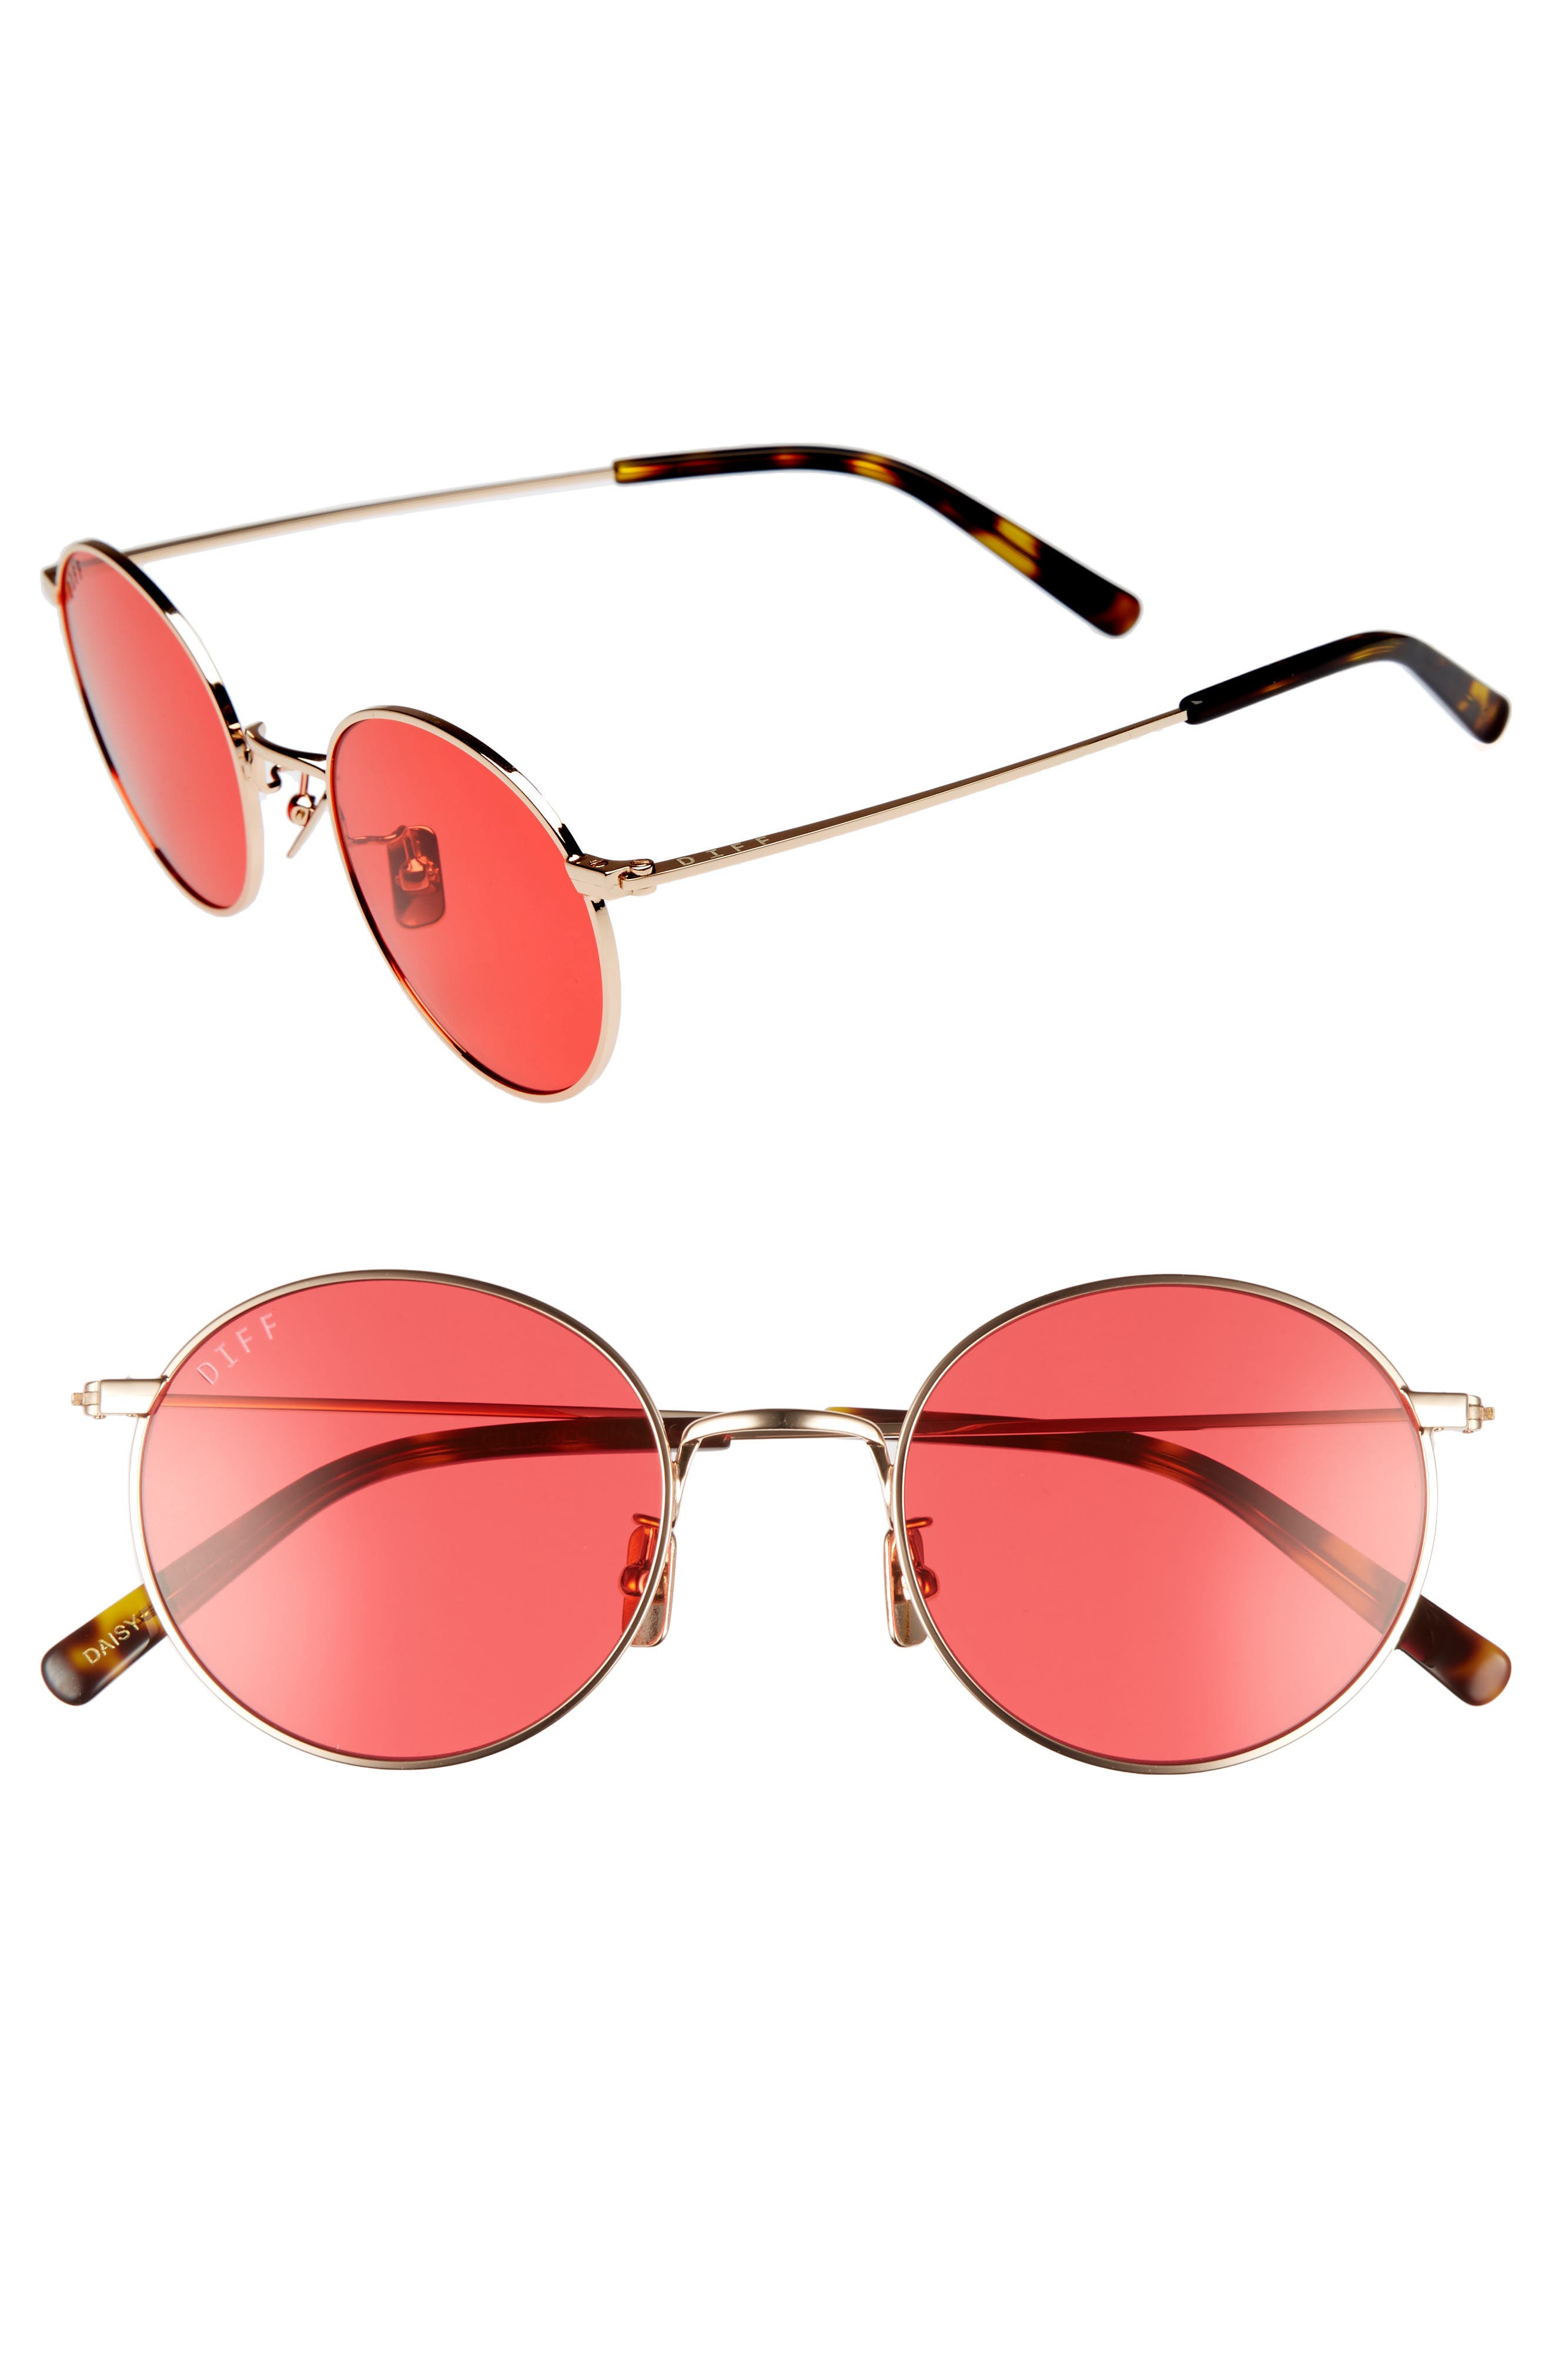 Daisy 51mm Round Sunglasses,                             Main thumbnail 1, color,                             Gold/ Red